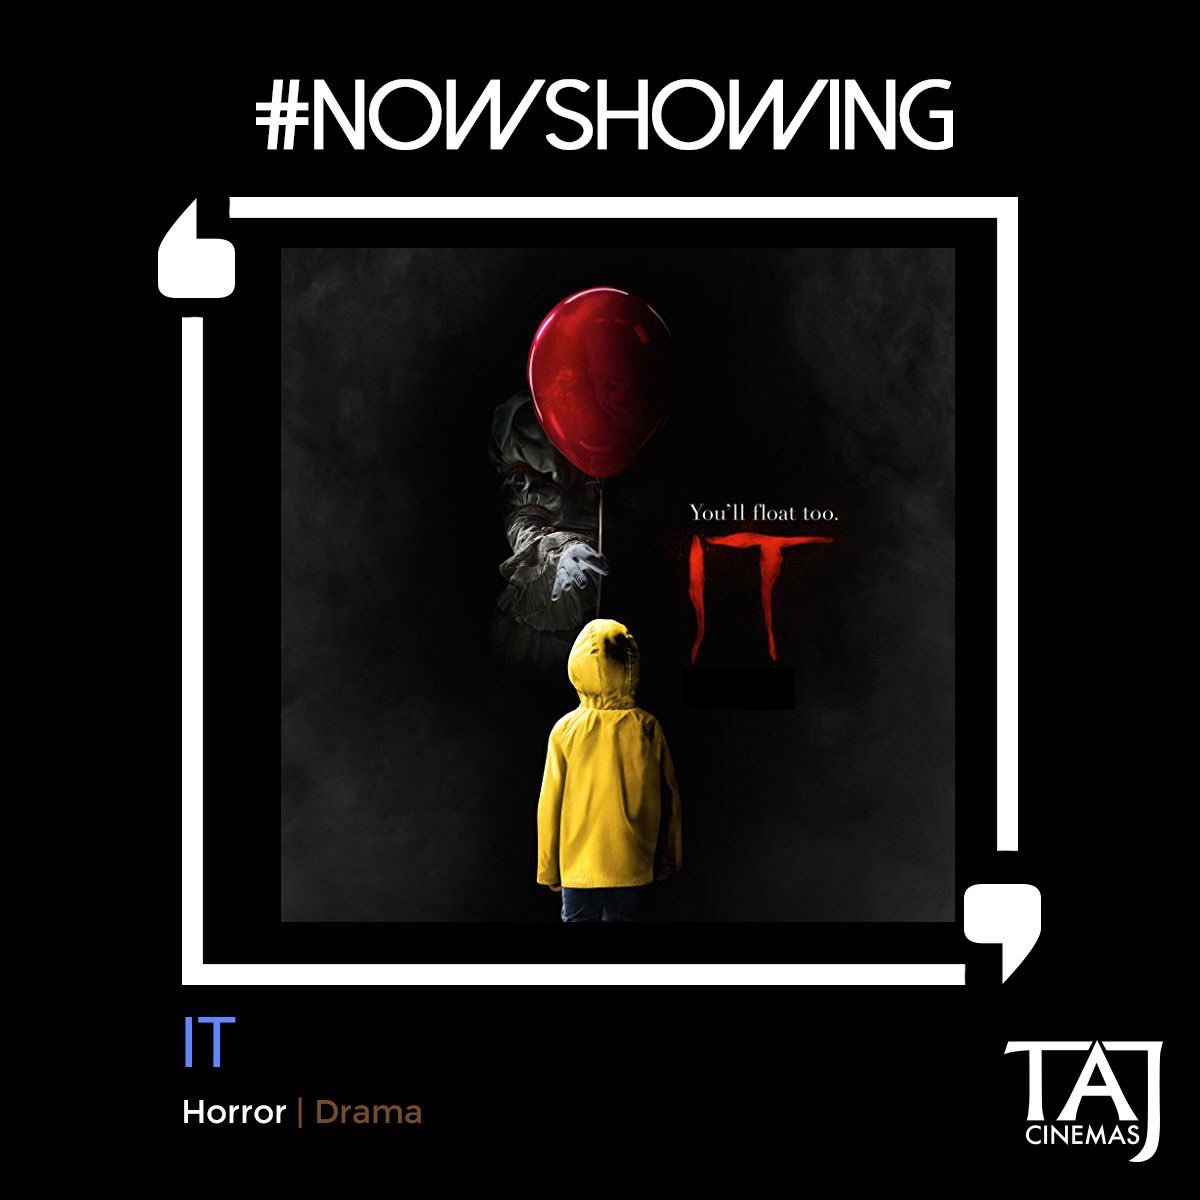 #NowShowing  #Drama | #Horror  Good luck getting home before curfew. The movie #IT is Now Showing at TAJ Cinemas. #TAJCinemas #Movies #Jo https://t.co/GgEPlyzYCm